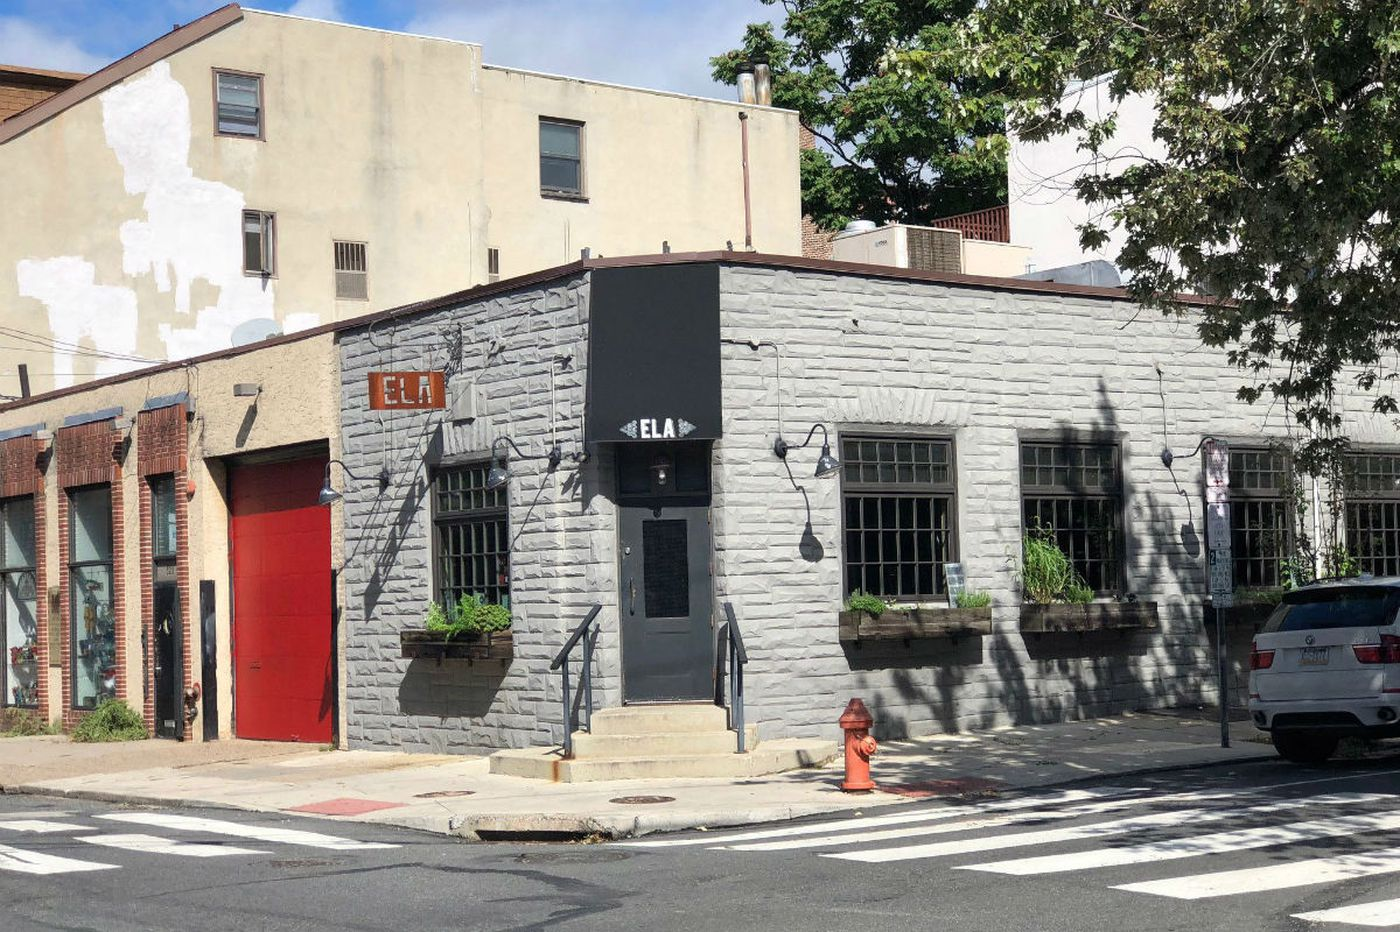 Cry Baby Pasta & Wine Bar to take Ela's spot in Queen Village